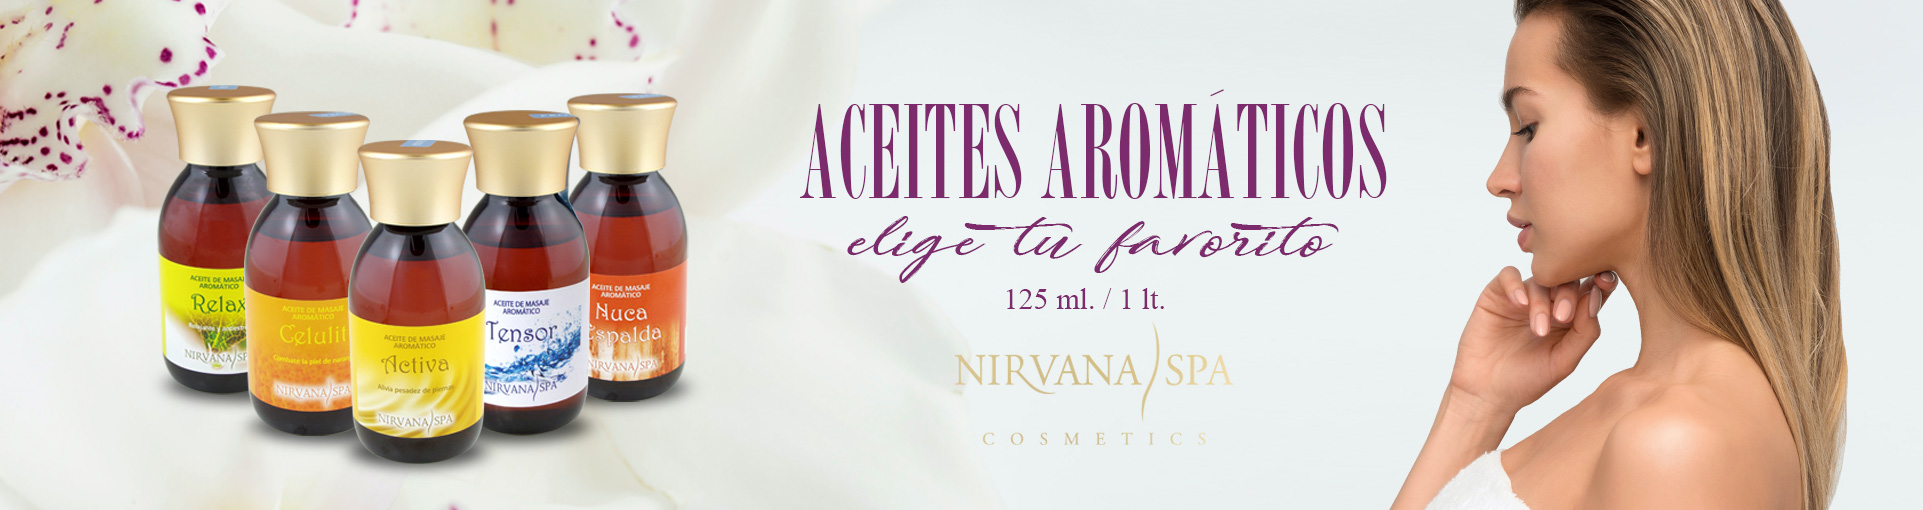 NV_21-04_Ac.Aromaticos-125-ml-Nirvana-Spa